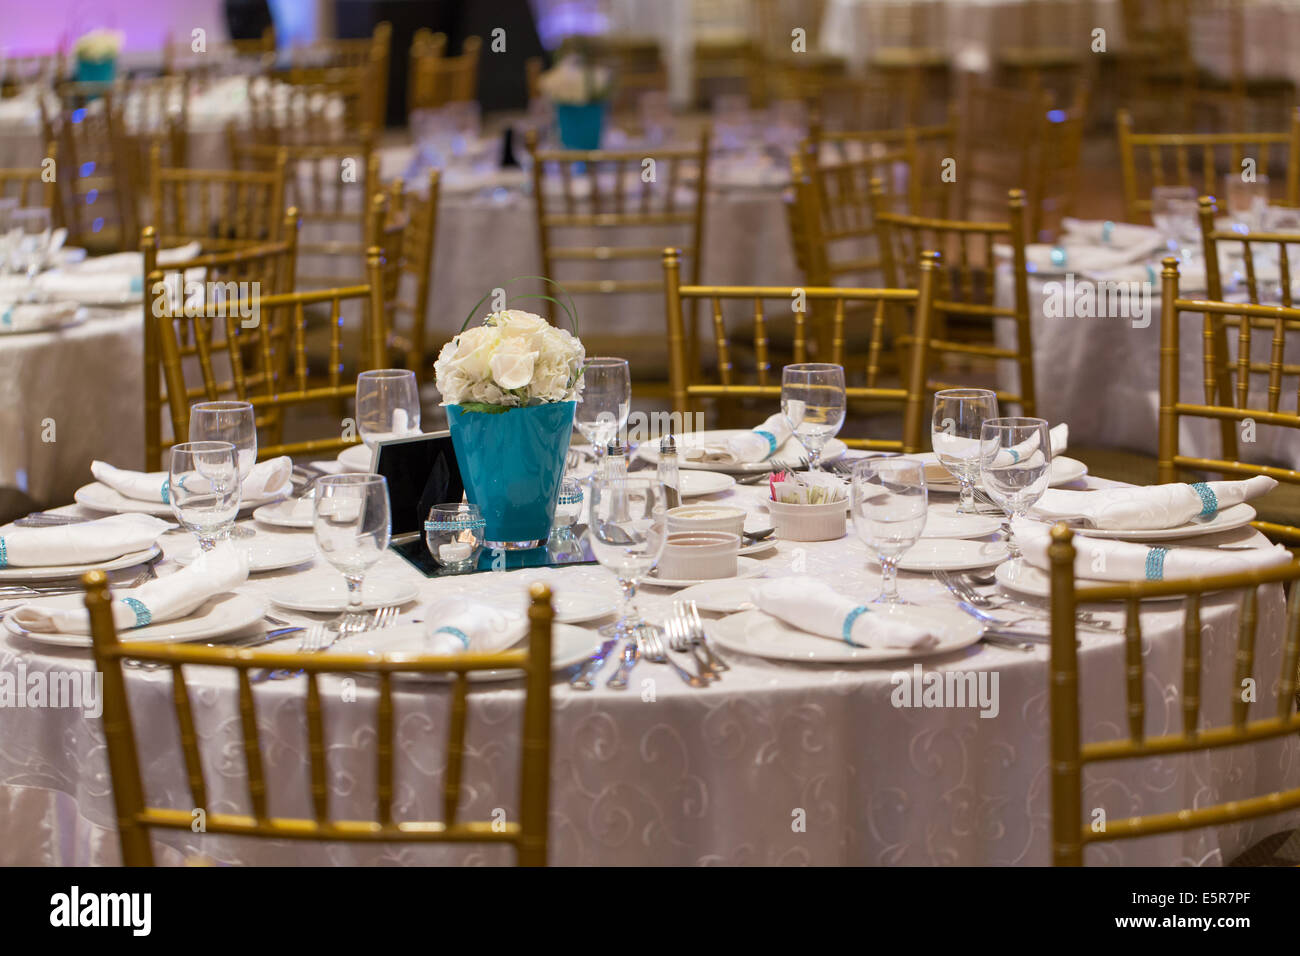 dining table setup decoration - Stock Image & Dining Table Setup Stock Photos u0026 Dining Table Setup Stock Images ...